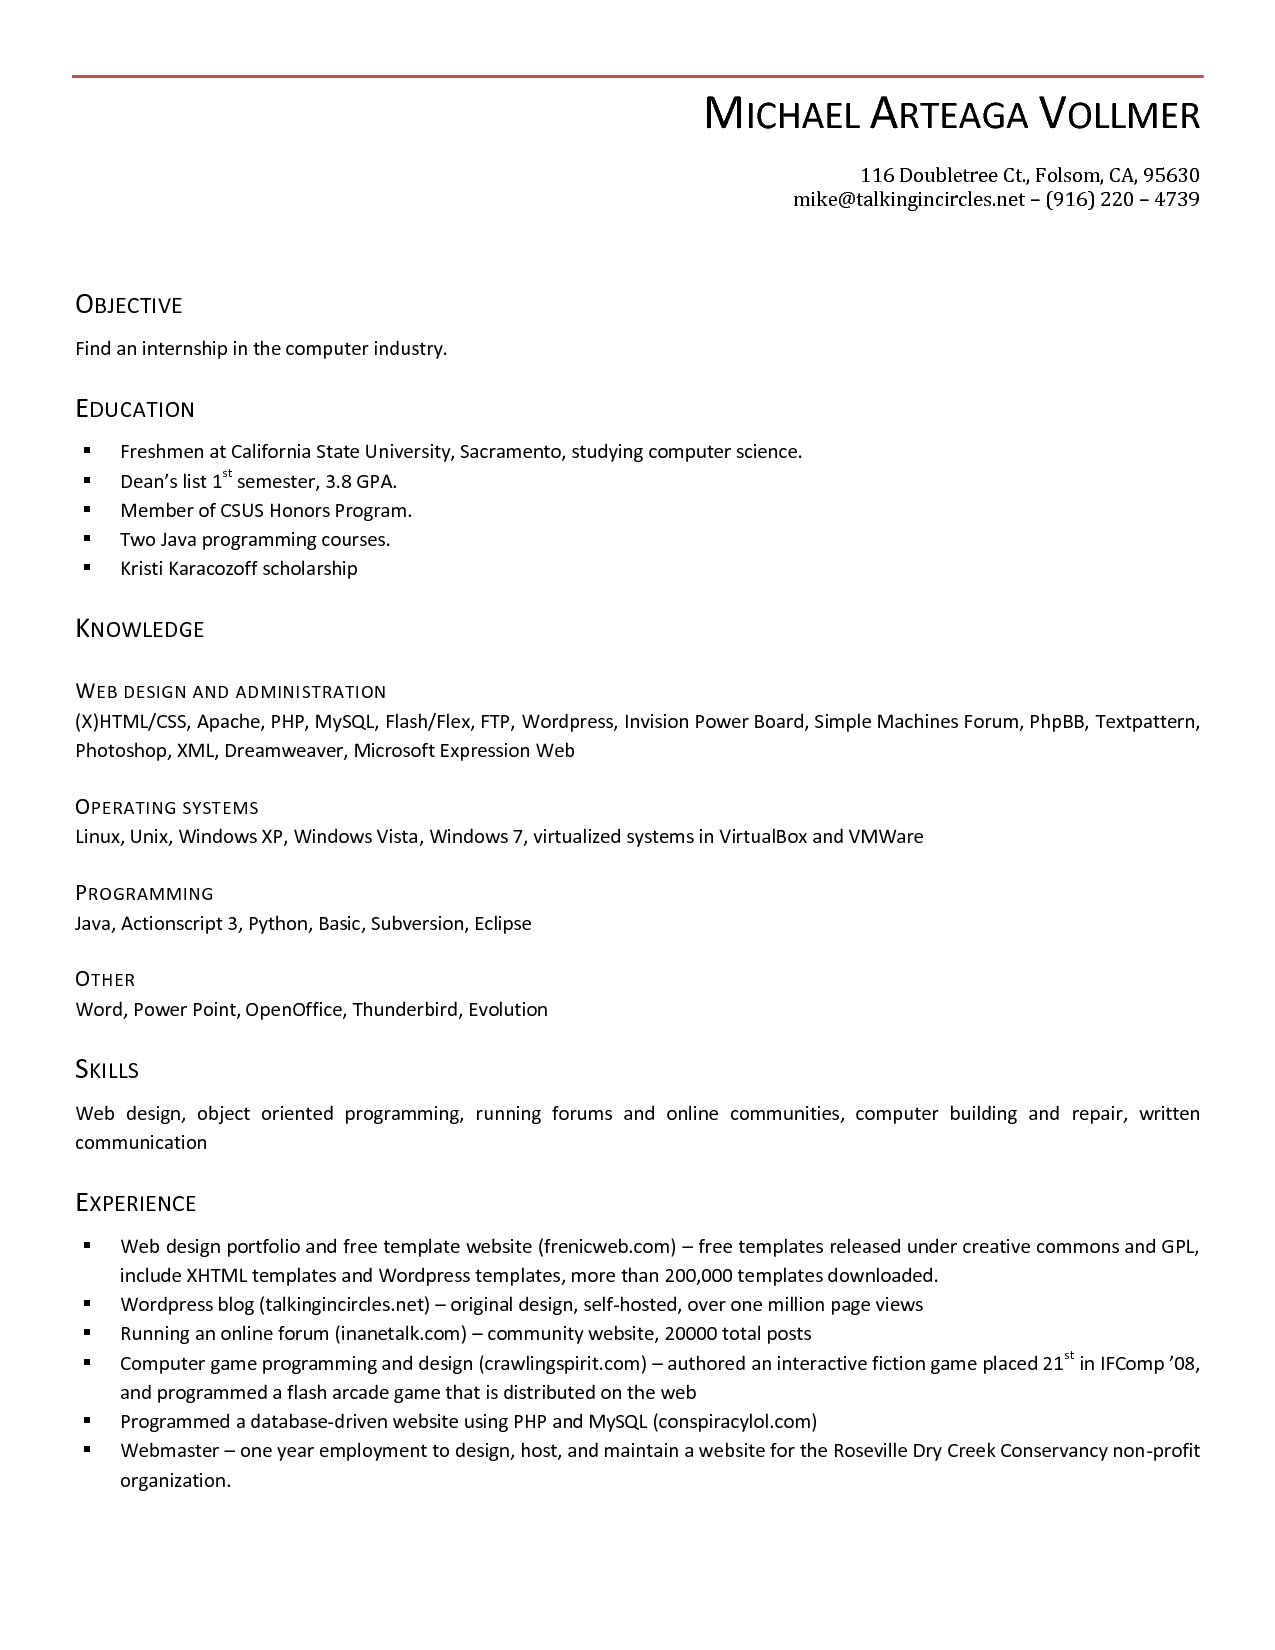 resume templates for openoffice hdresume templates cover letter examples - Resume Templates For Openoffice